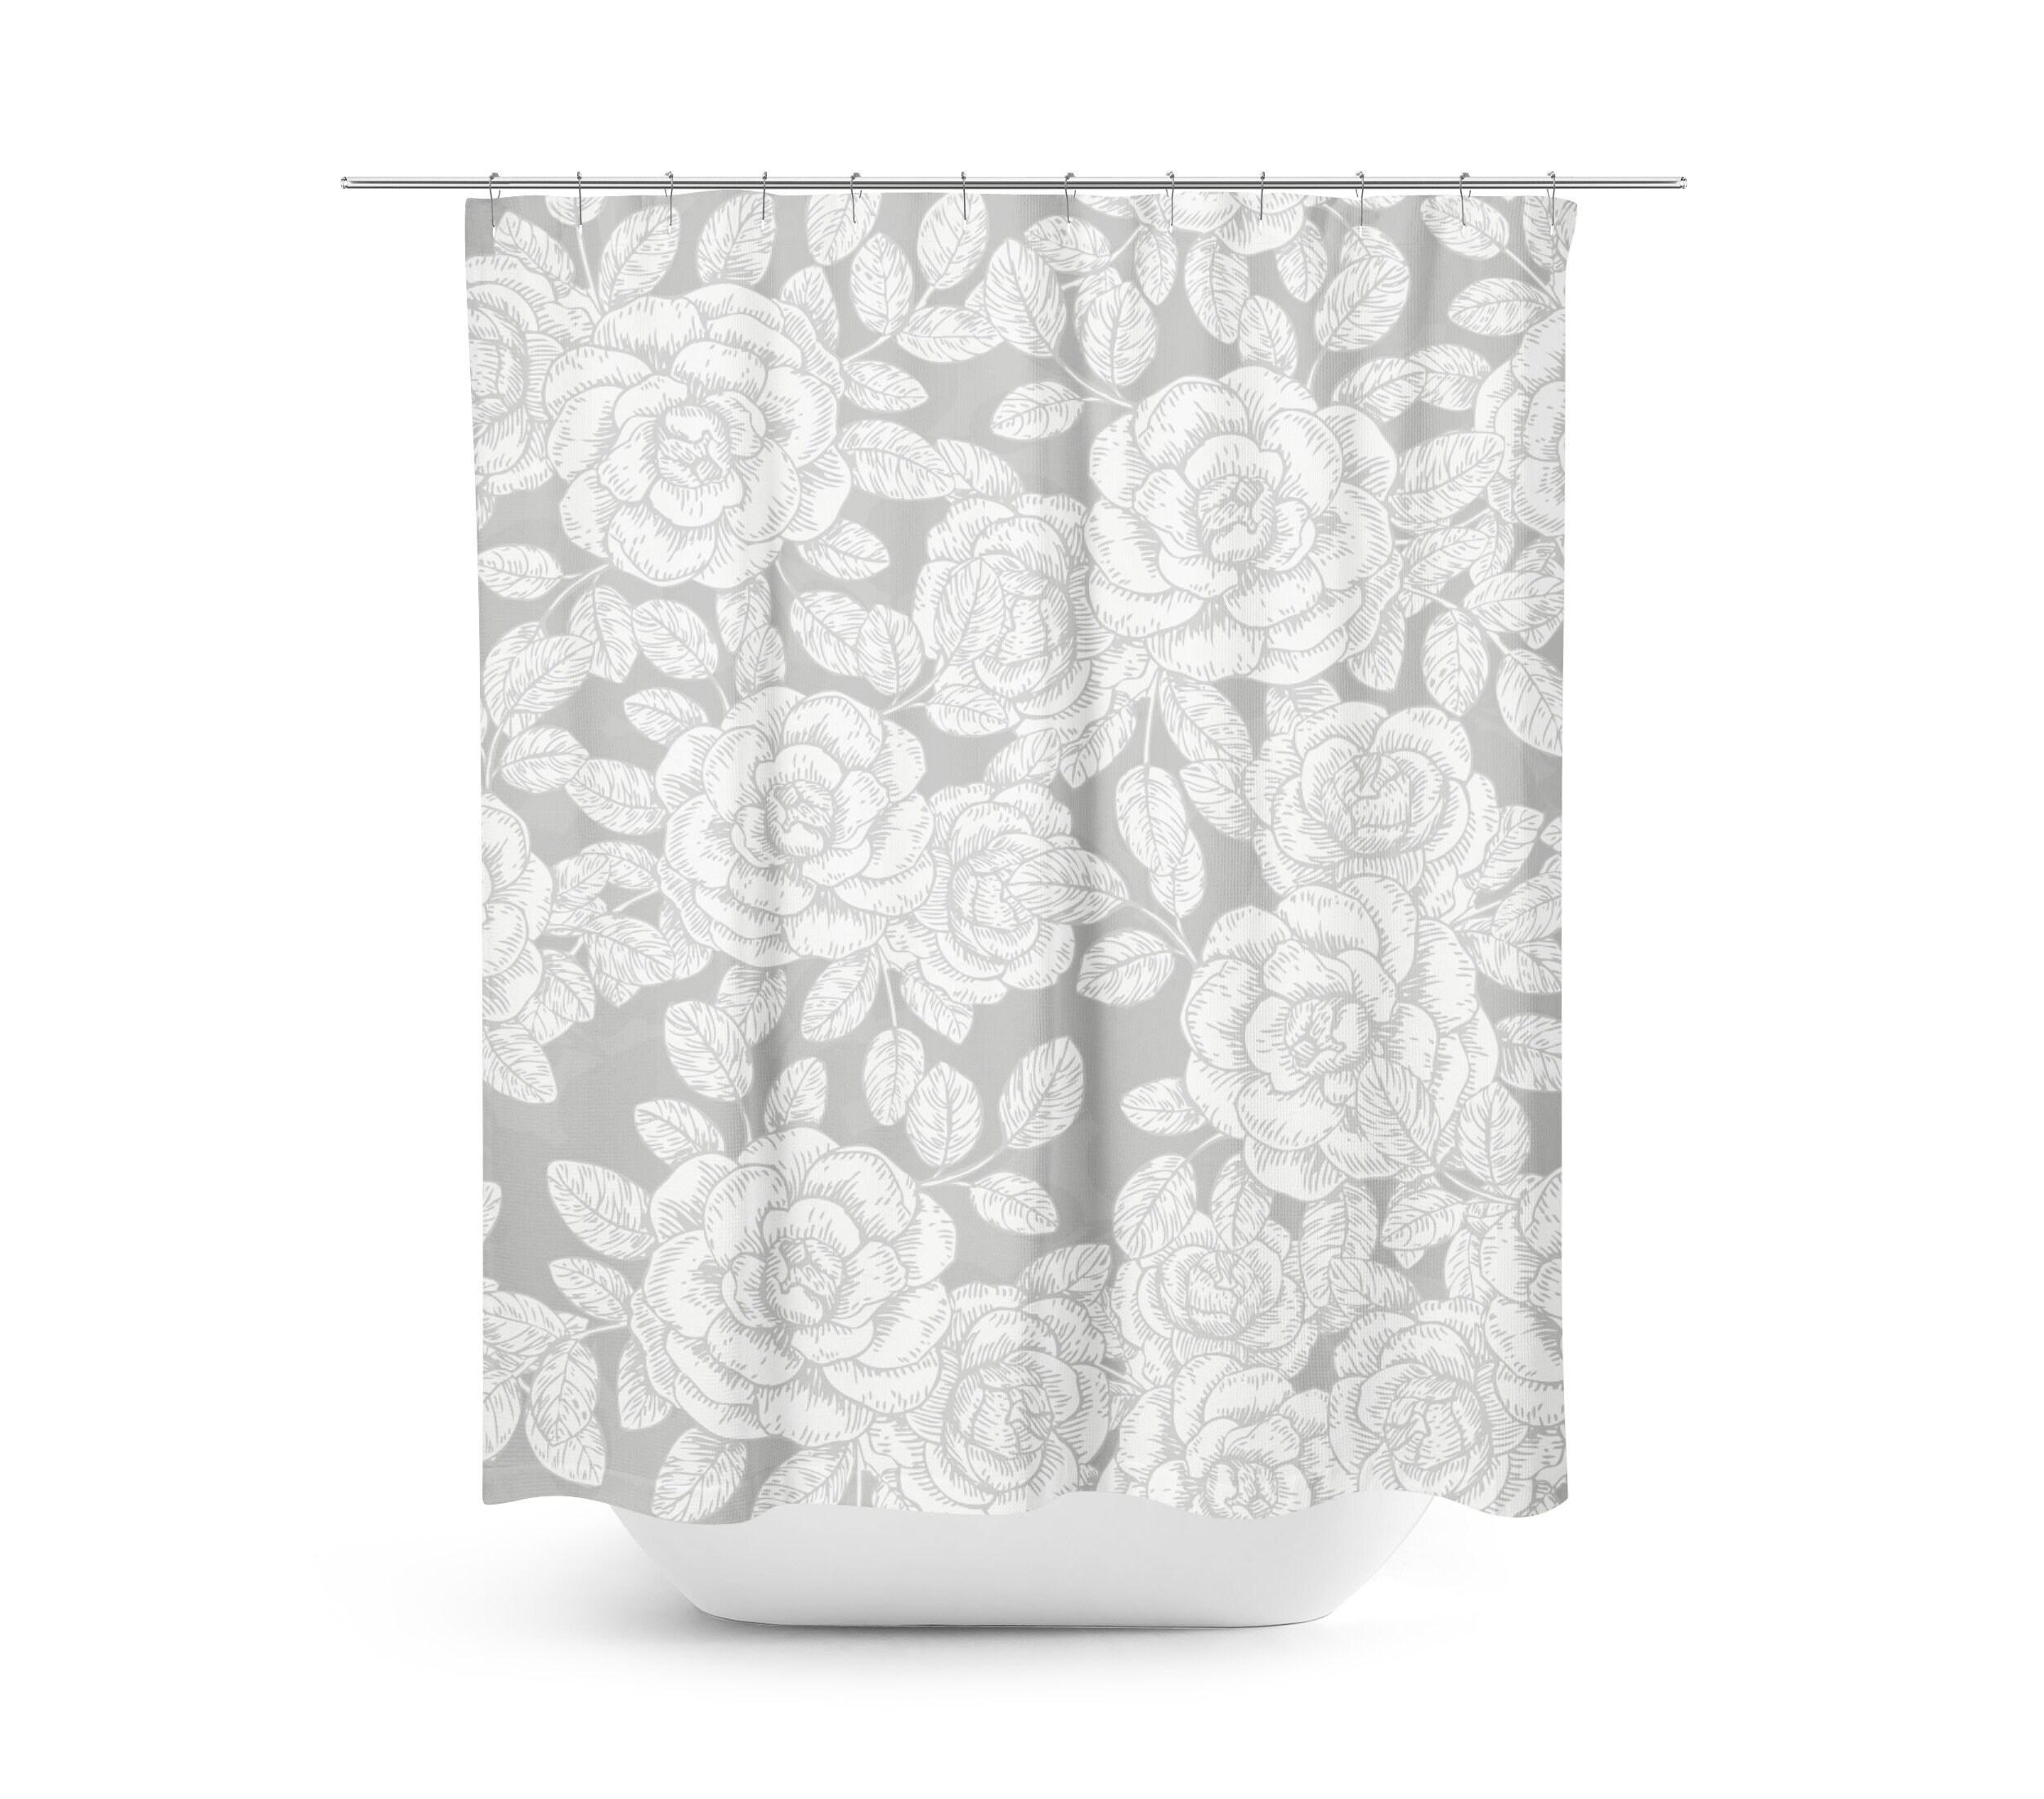 Gray Floral Shower Curtain Farmhouse Bathroom Decor Gray Shower Curtain Country Decor Fabric Shower Curtain Vintage Roses Gray Bathroom